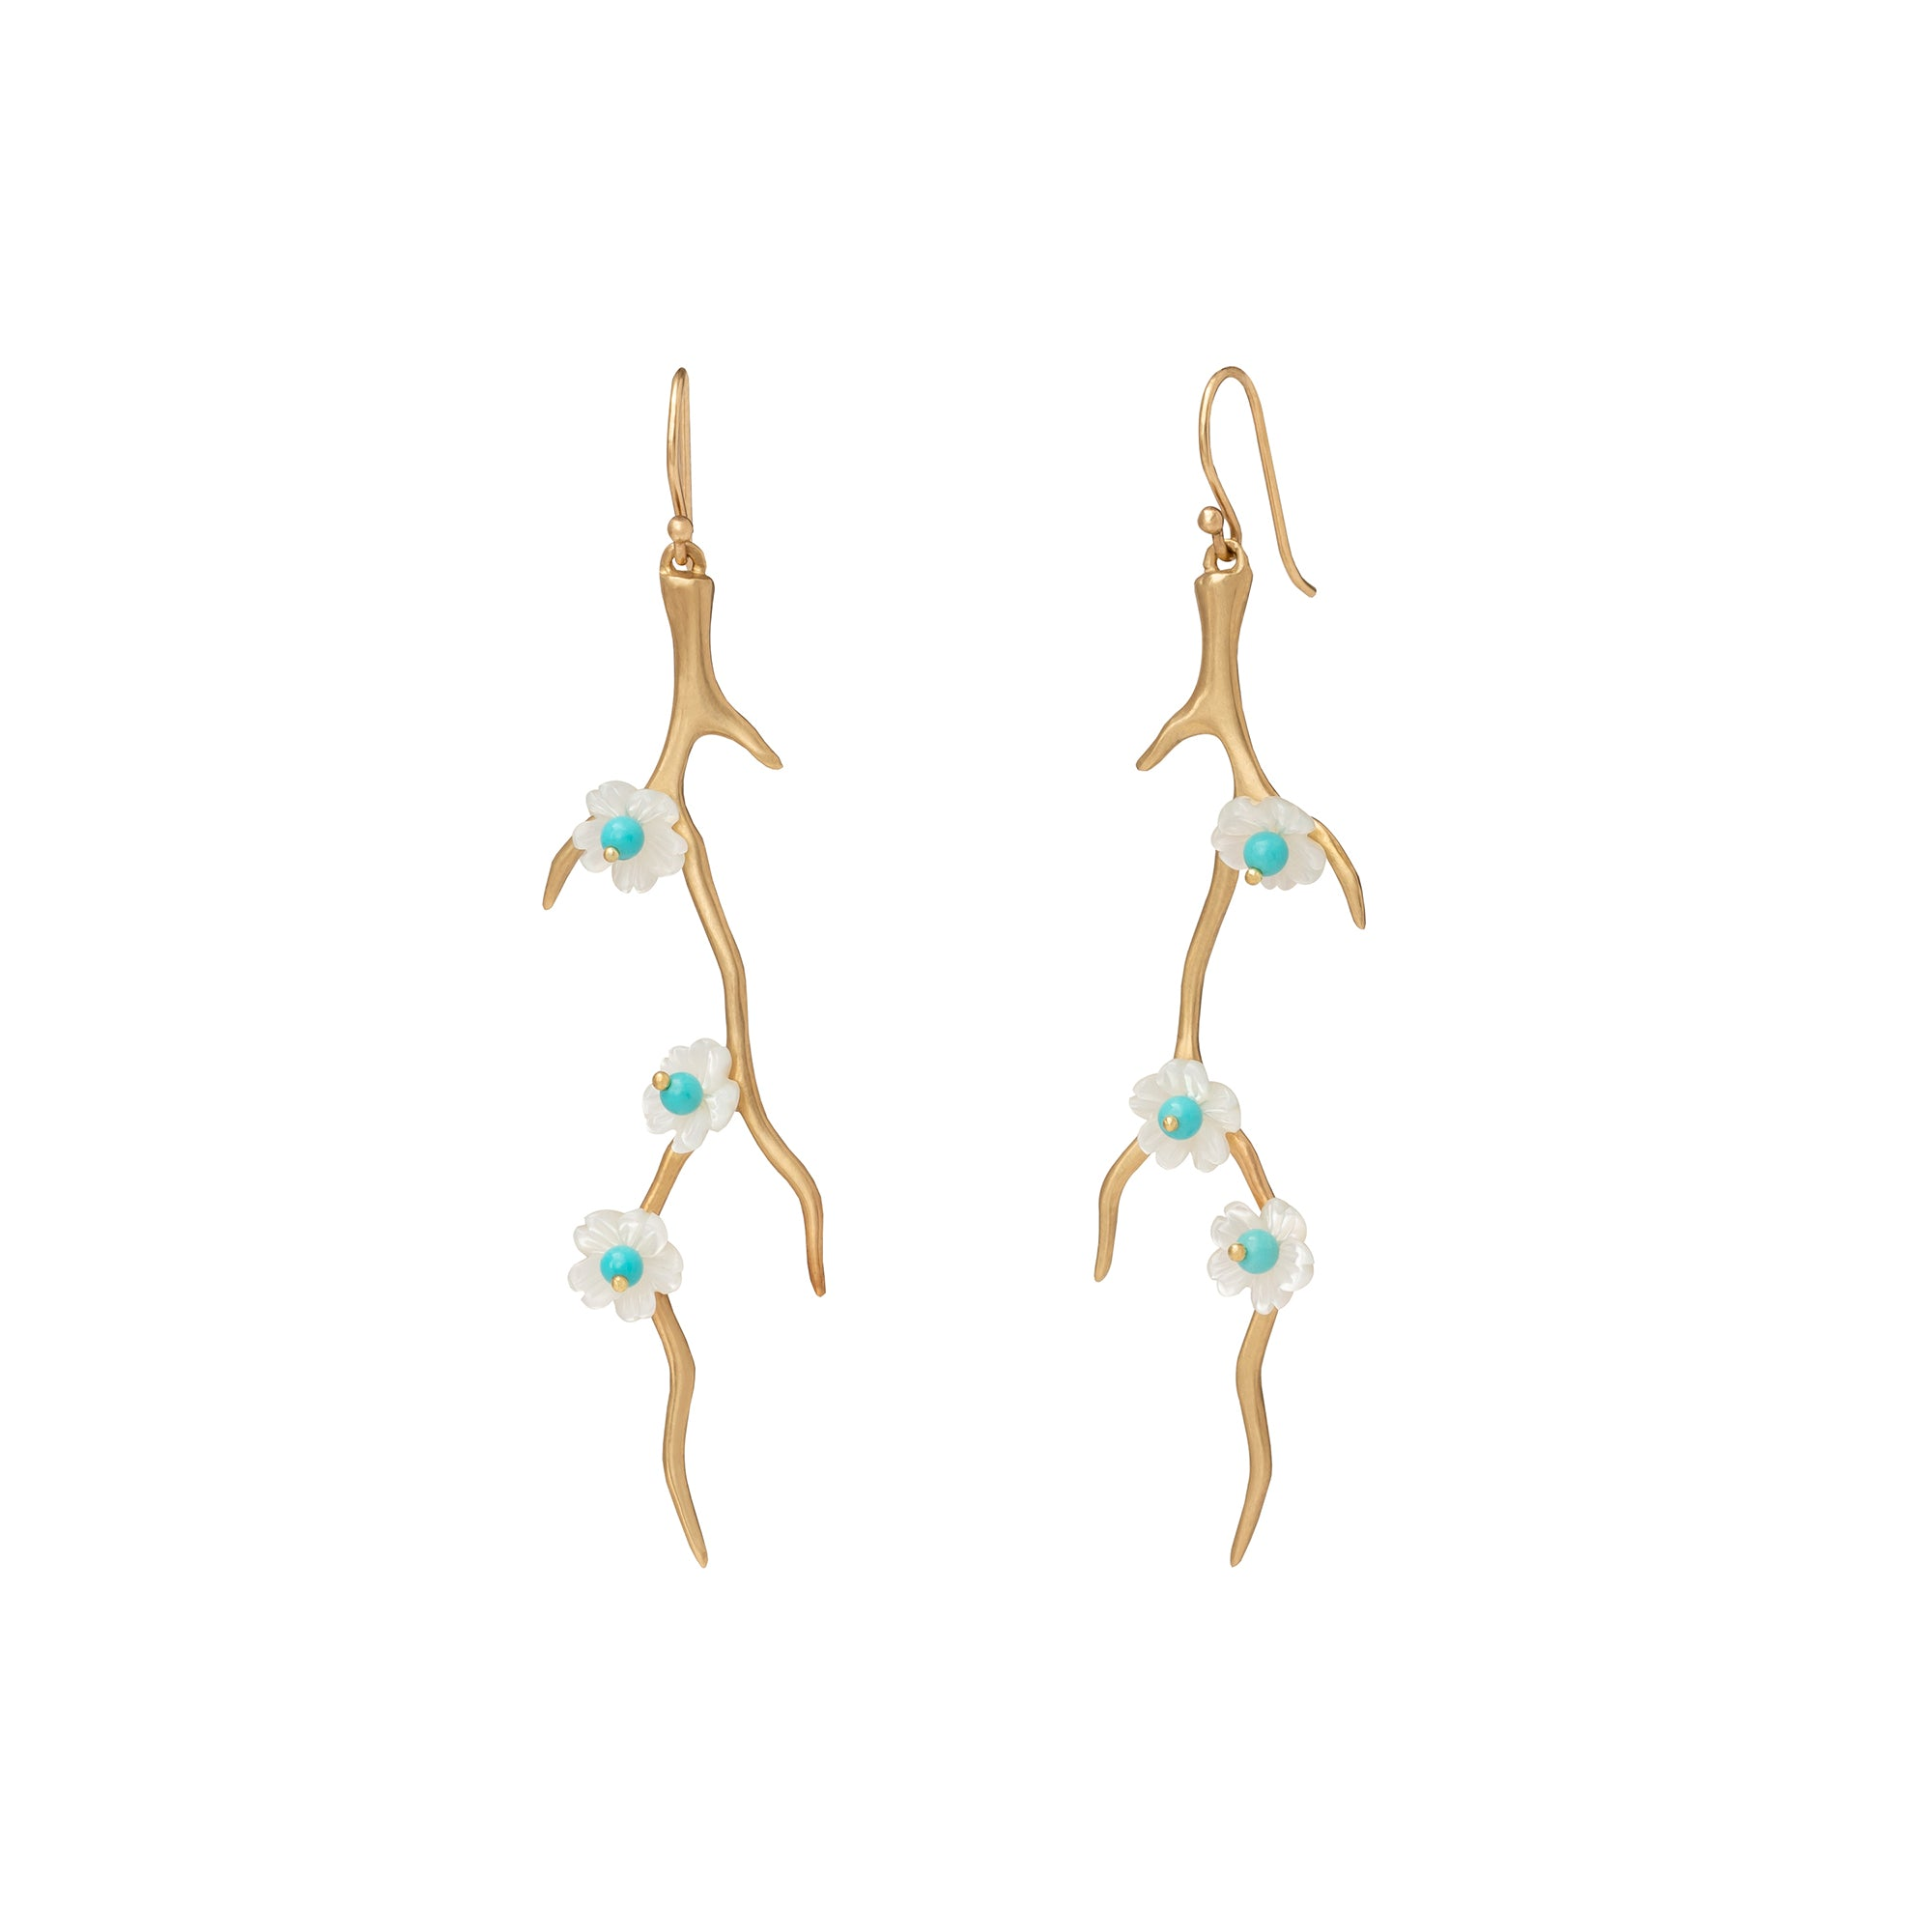 Mother of Pearl Blossom Branch Earrings - Annette Ferdinandsen - earrings | Broken English Jewelry